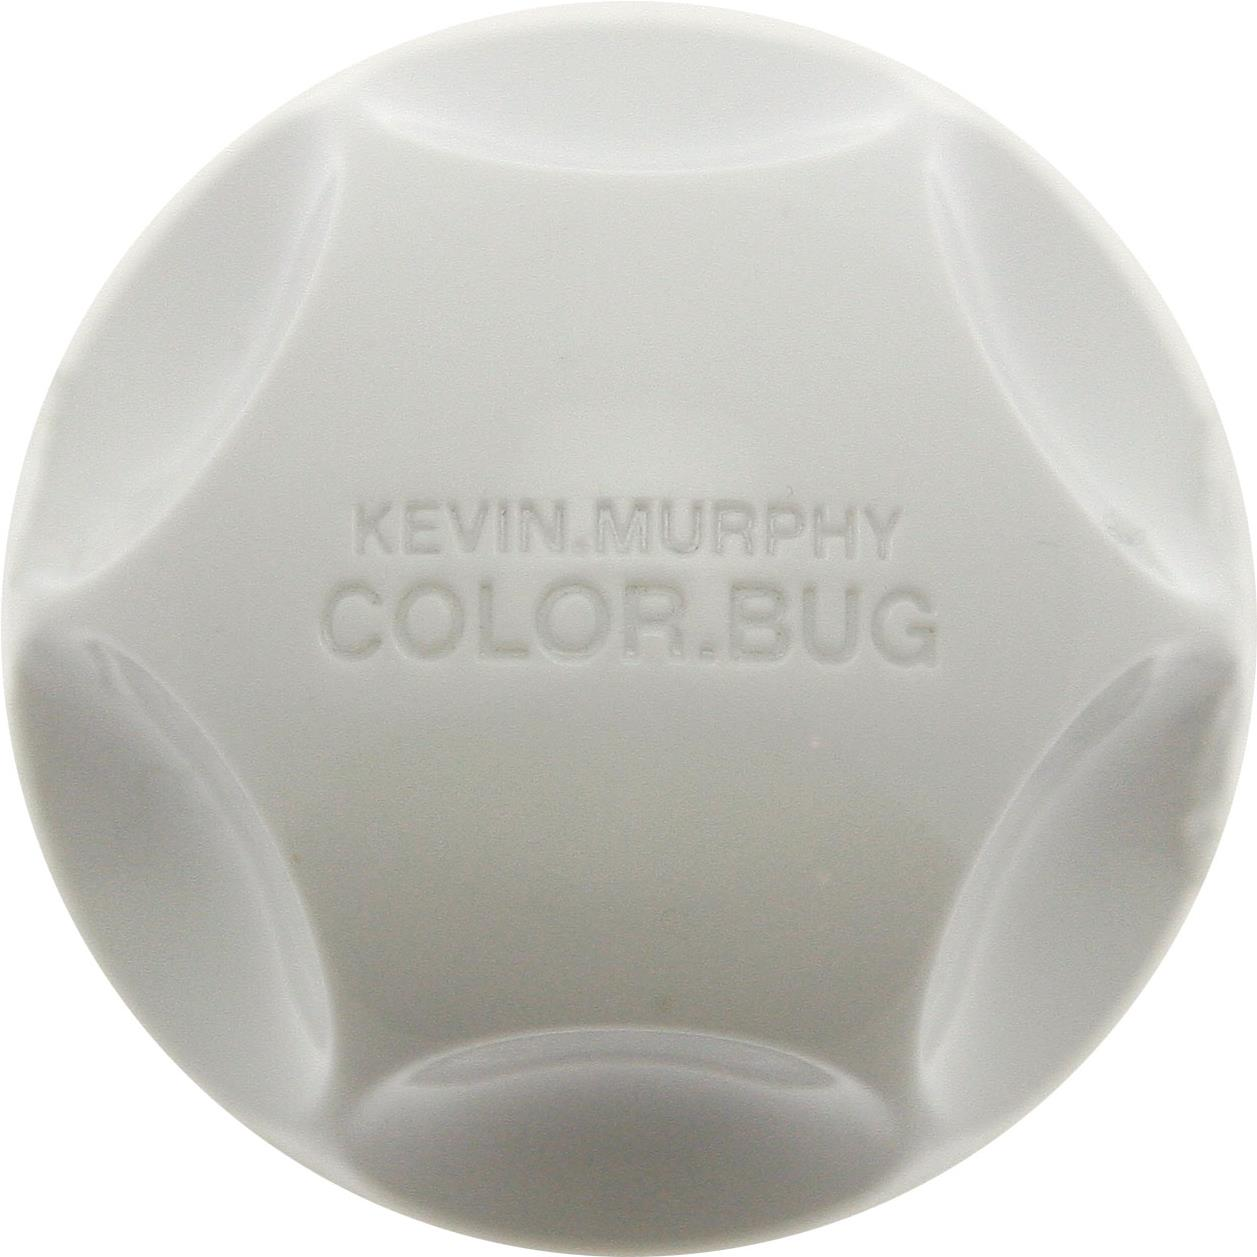 kevin murphy colorbug - Kevin Murphy Color Bug